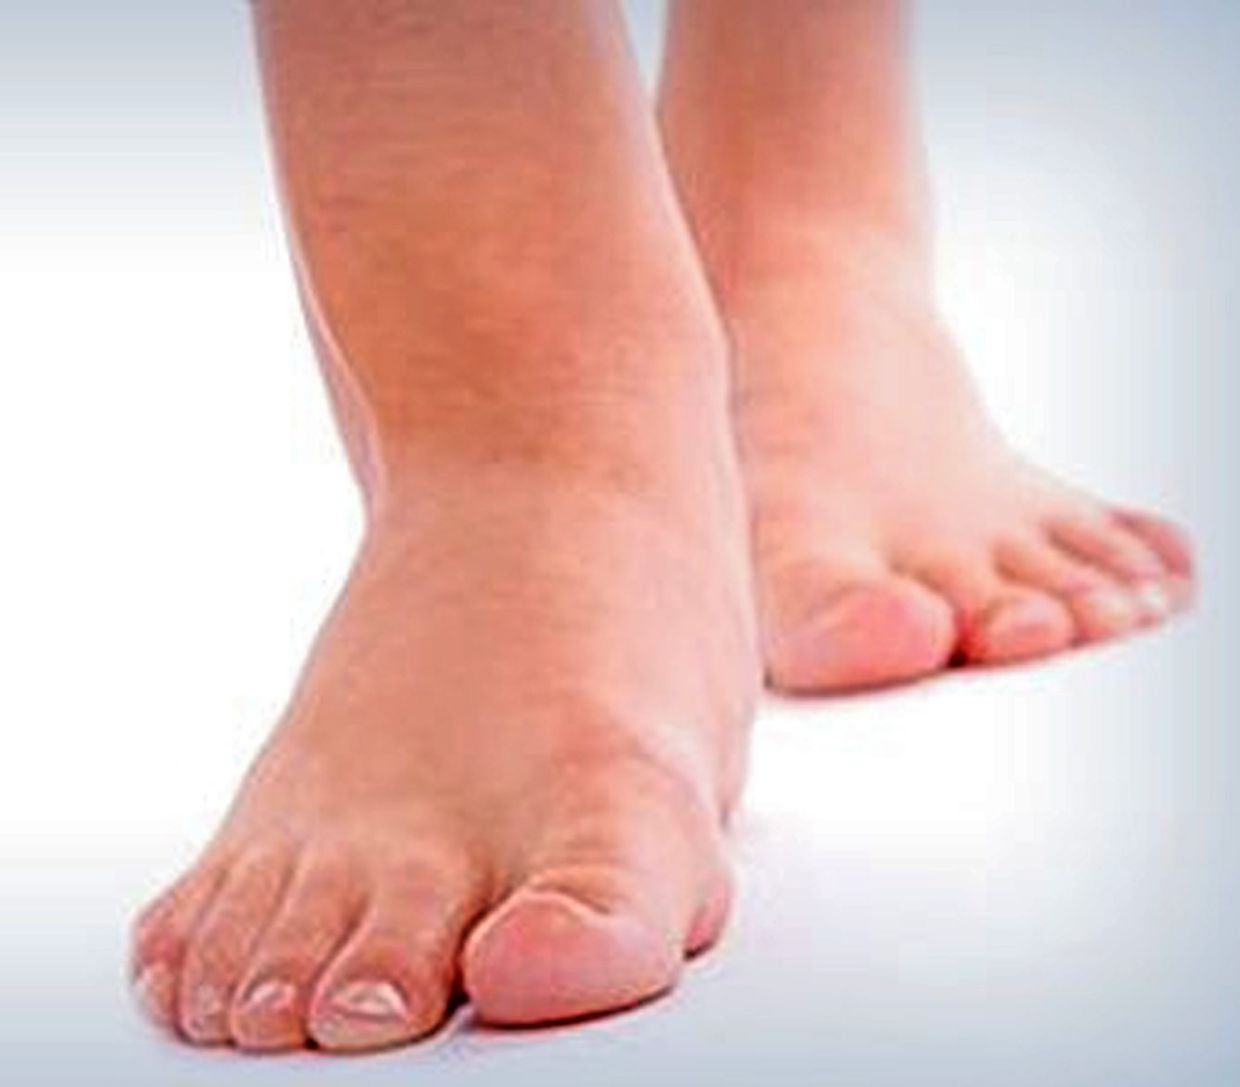 Swollen feet and legs due to congestion are a common sign of heart failure. — Filepic